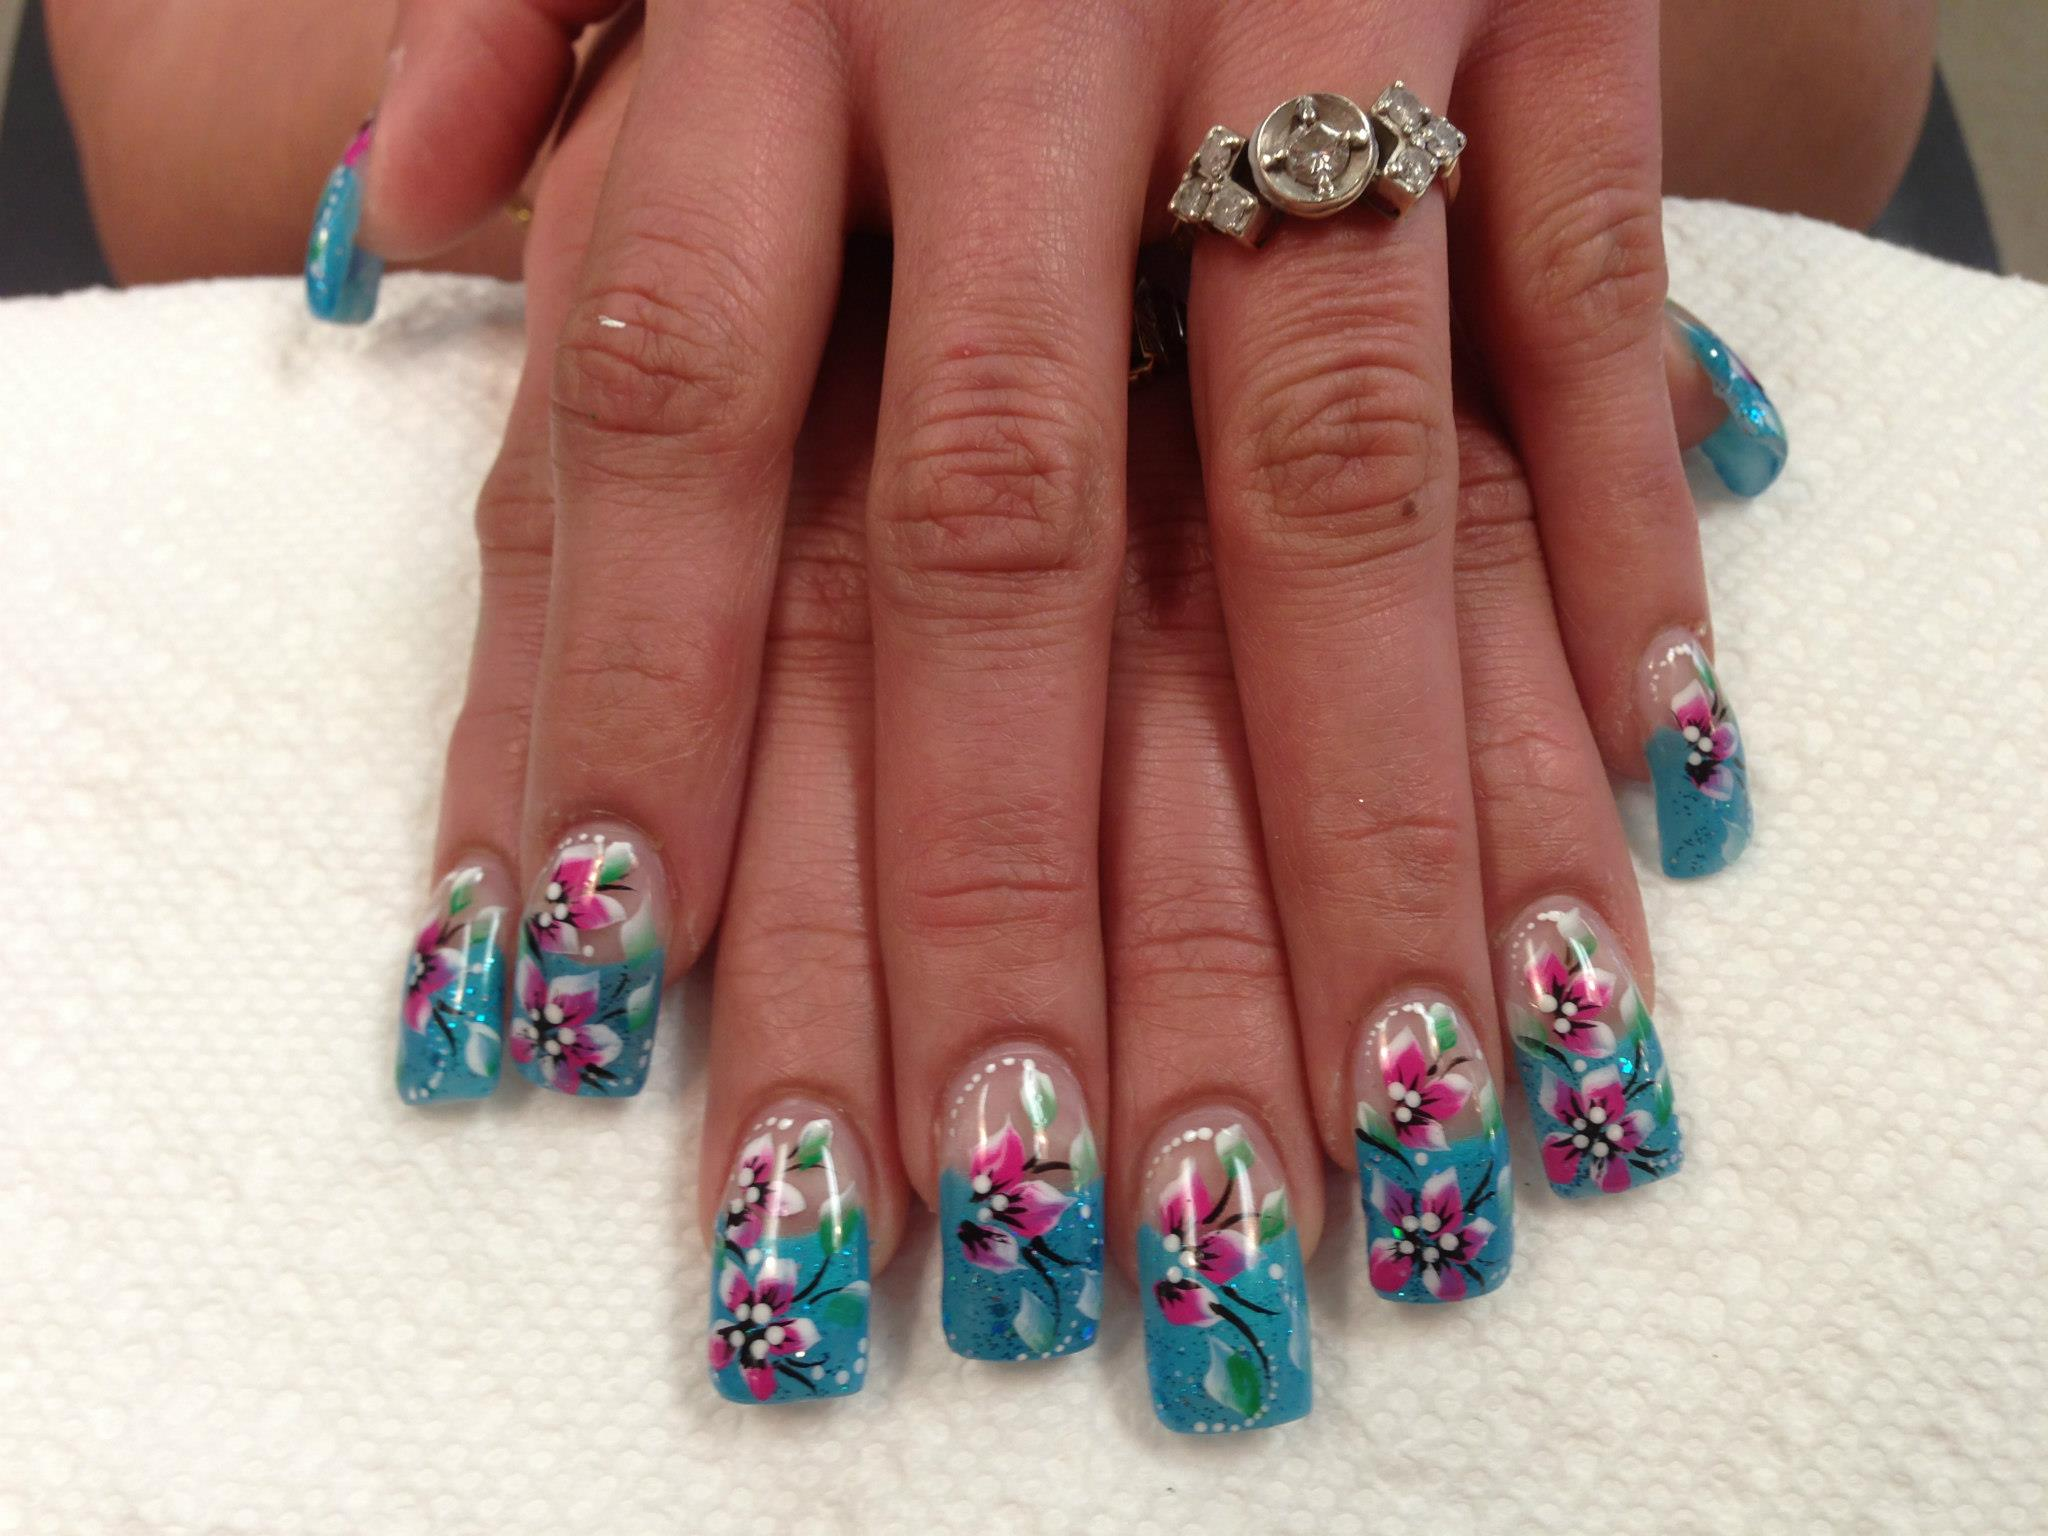 Lily of Winter, nail art designs by Top Nails, Clarksville TN. | Top ...